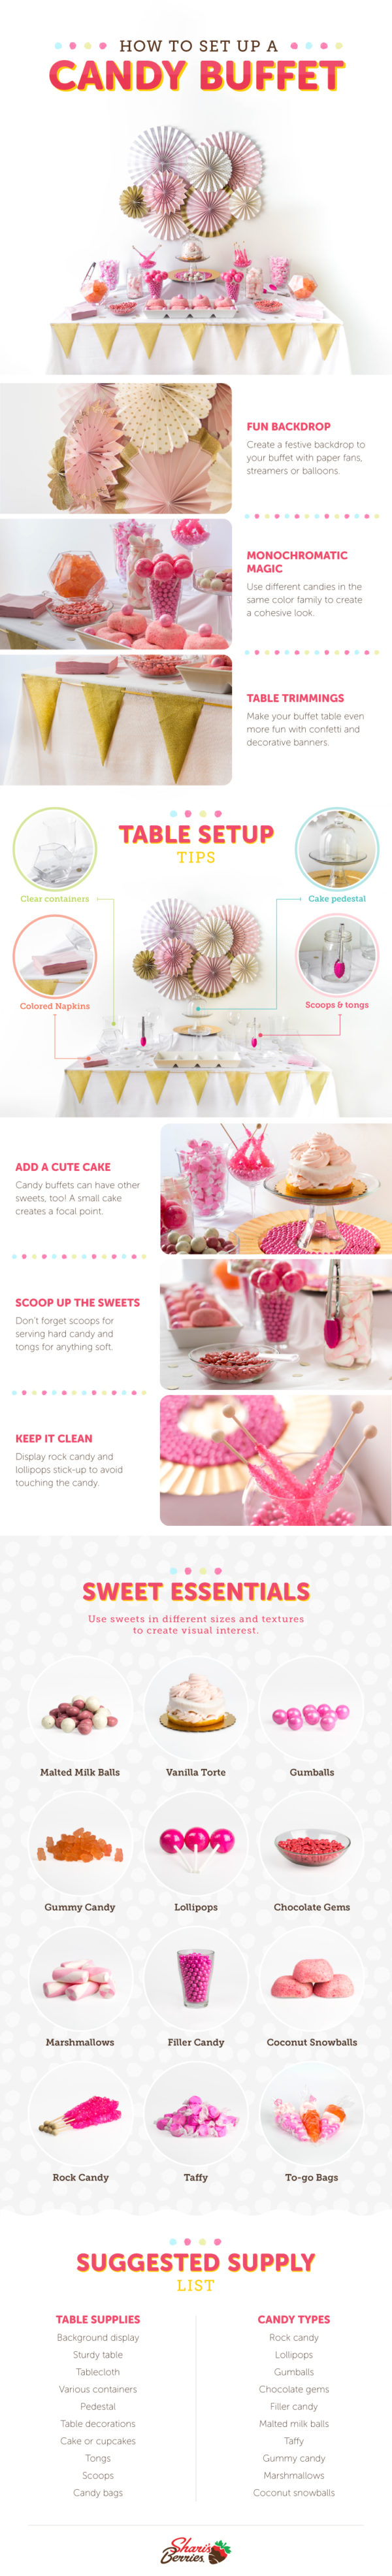 How to setup a candy Buffet - Table Set Up Tips